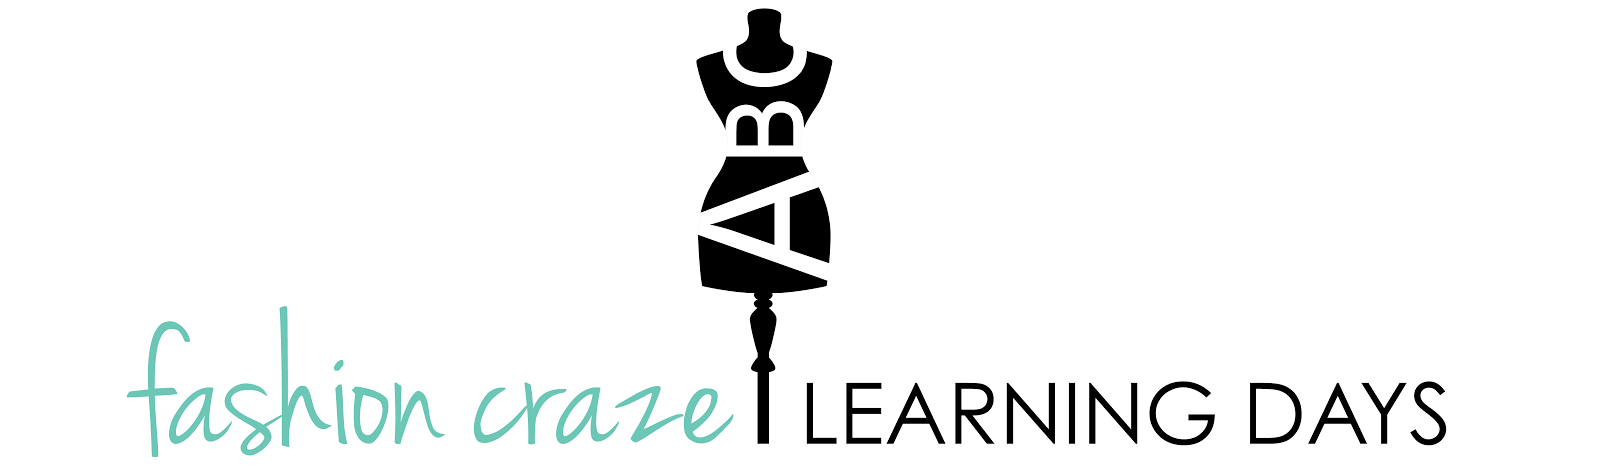 Fashion Craze Learning Days